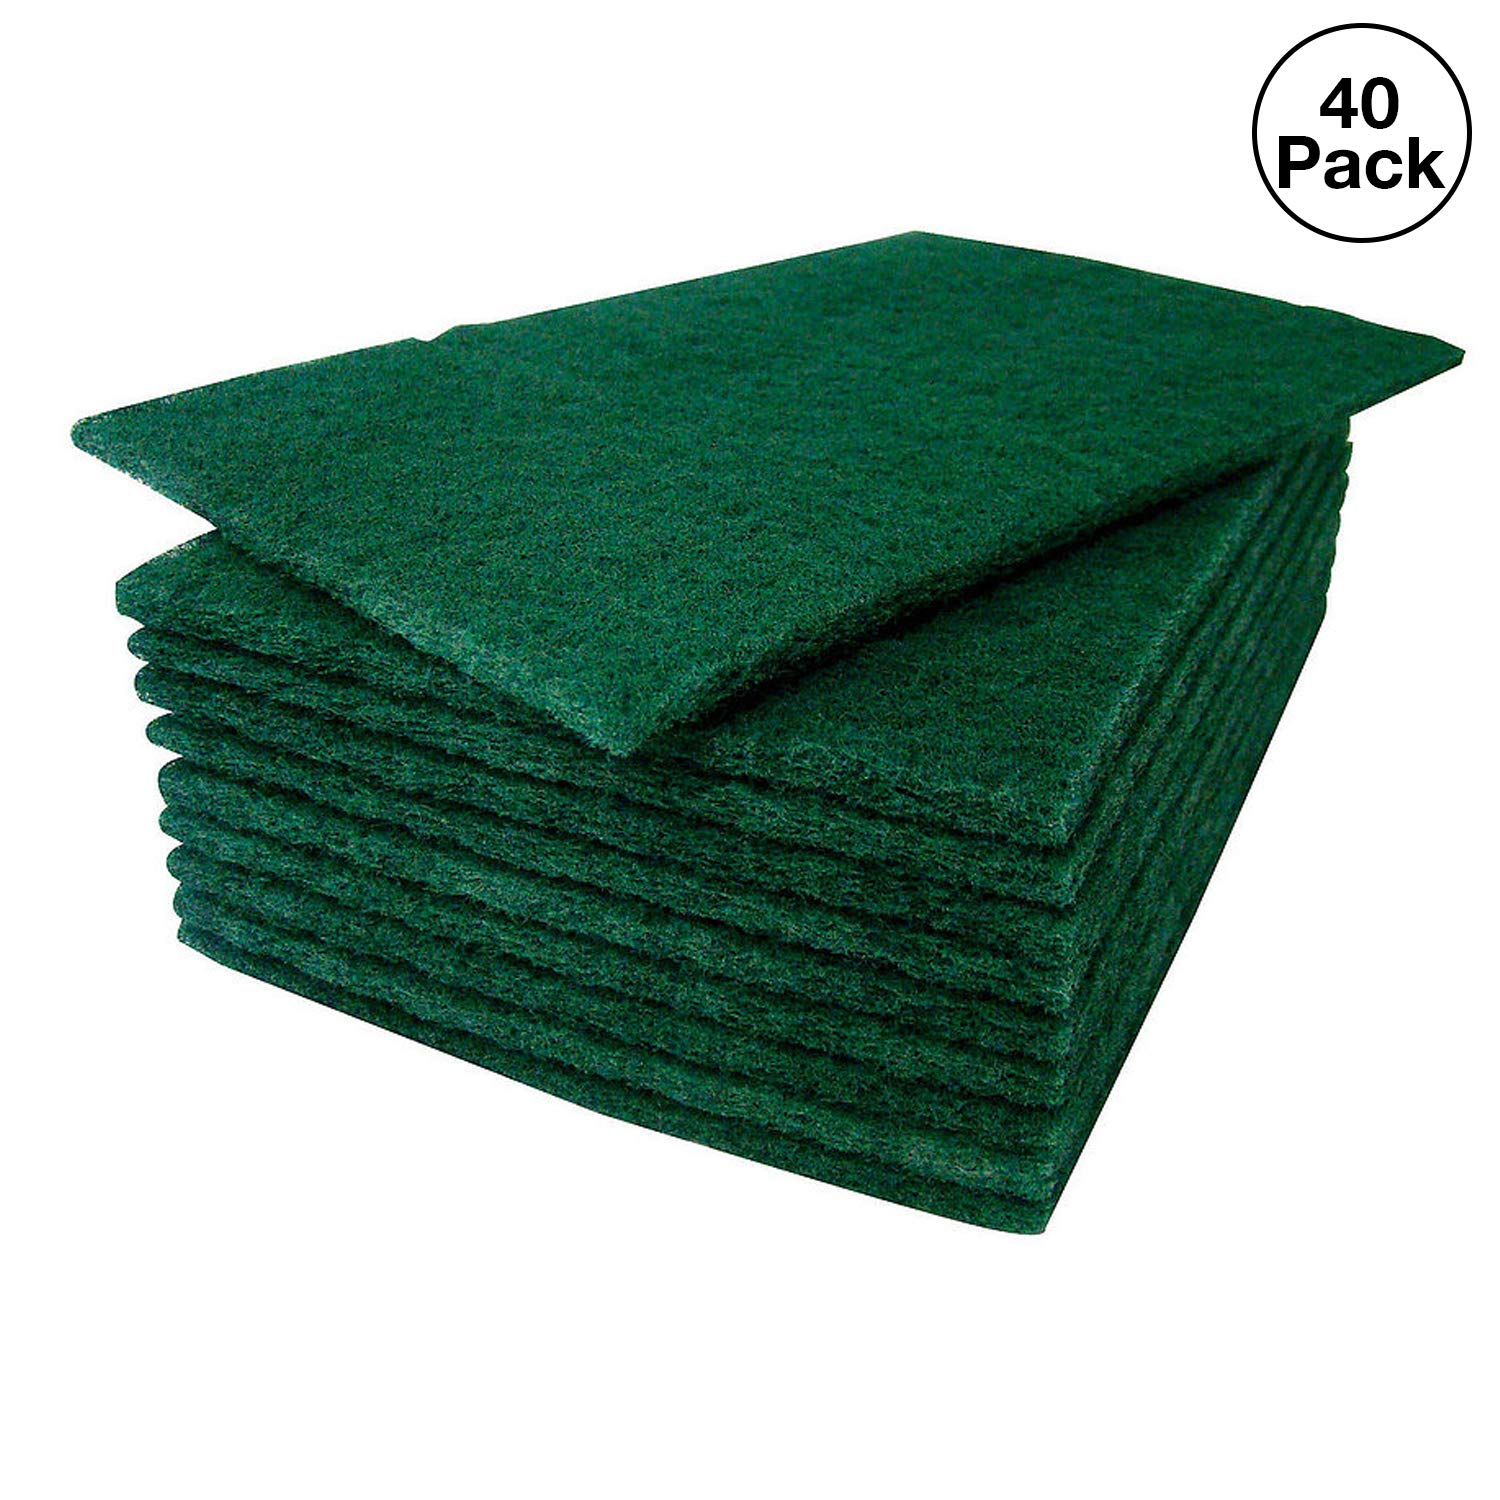 HeRO Dish Scrubber Scouring Pads - Household Scrub Pads for Stove Top Cleaner and Kitchen Scrubbers for Dishes, Cuts Solvents & Greasy Messes, Green 4.5 x 6 inch (Pack of 40) by HERO IMPORTS